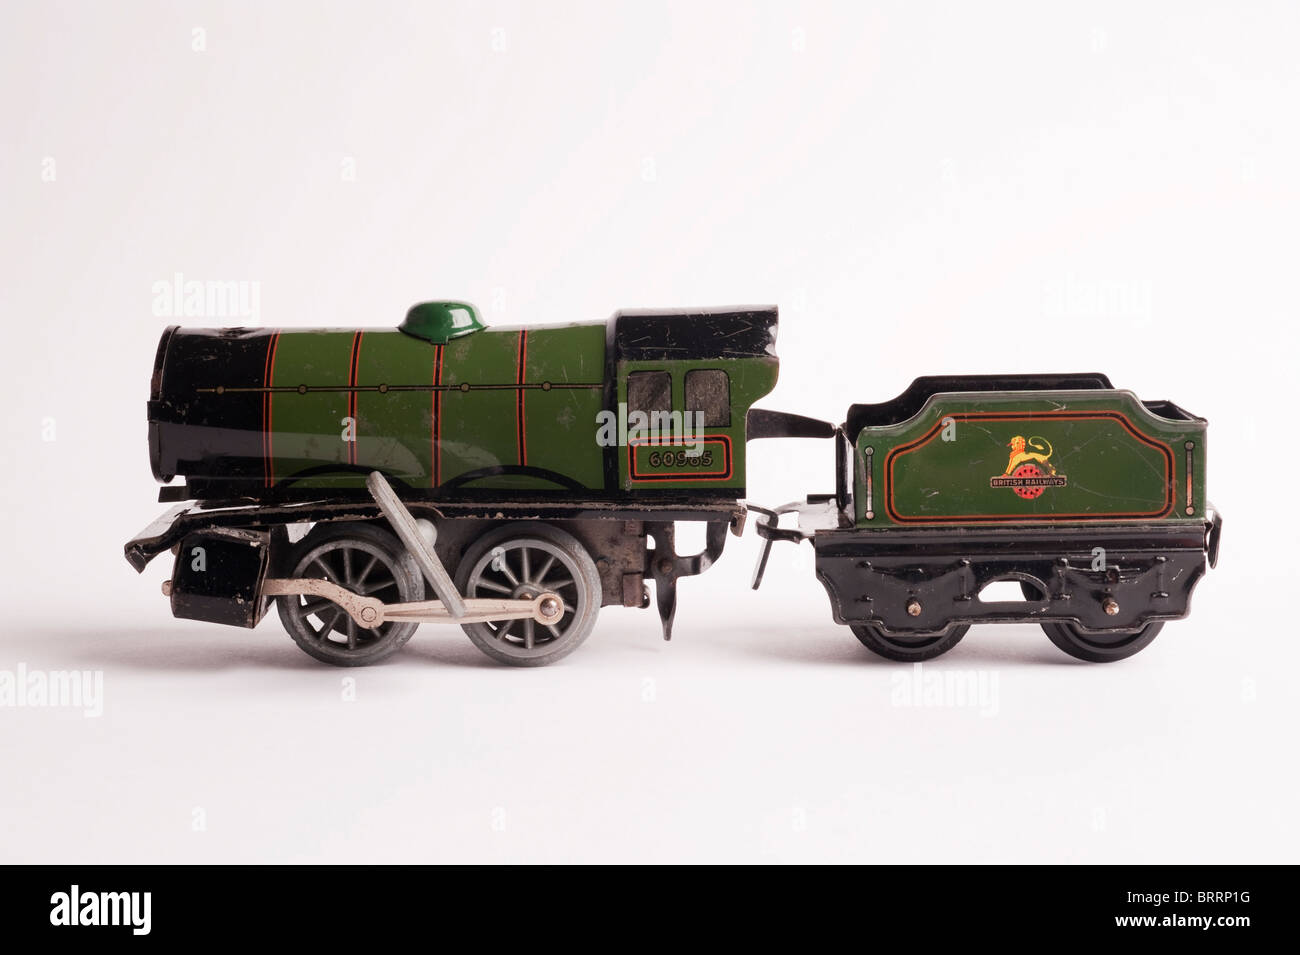 Tinplate Hornby 0 Gauge Train with Key, side view, circa 1950s - Stock Image